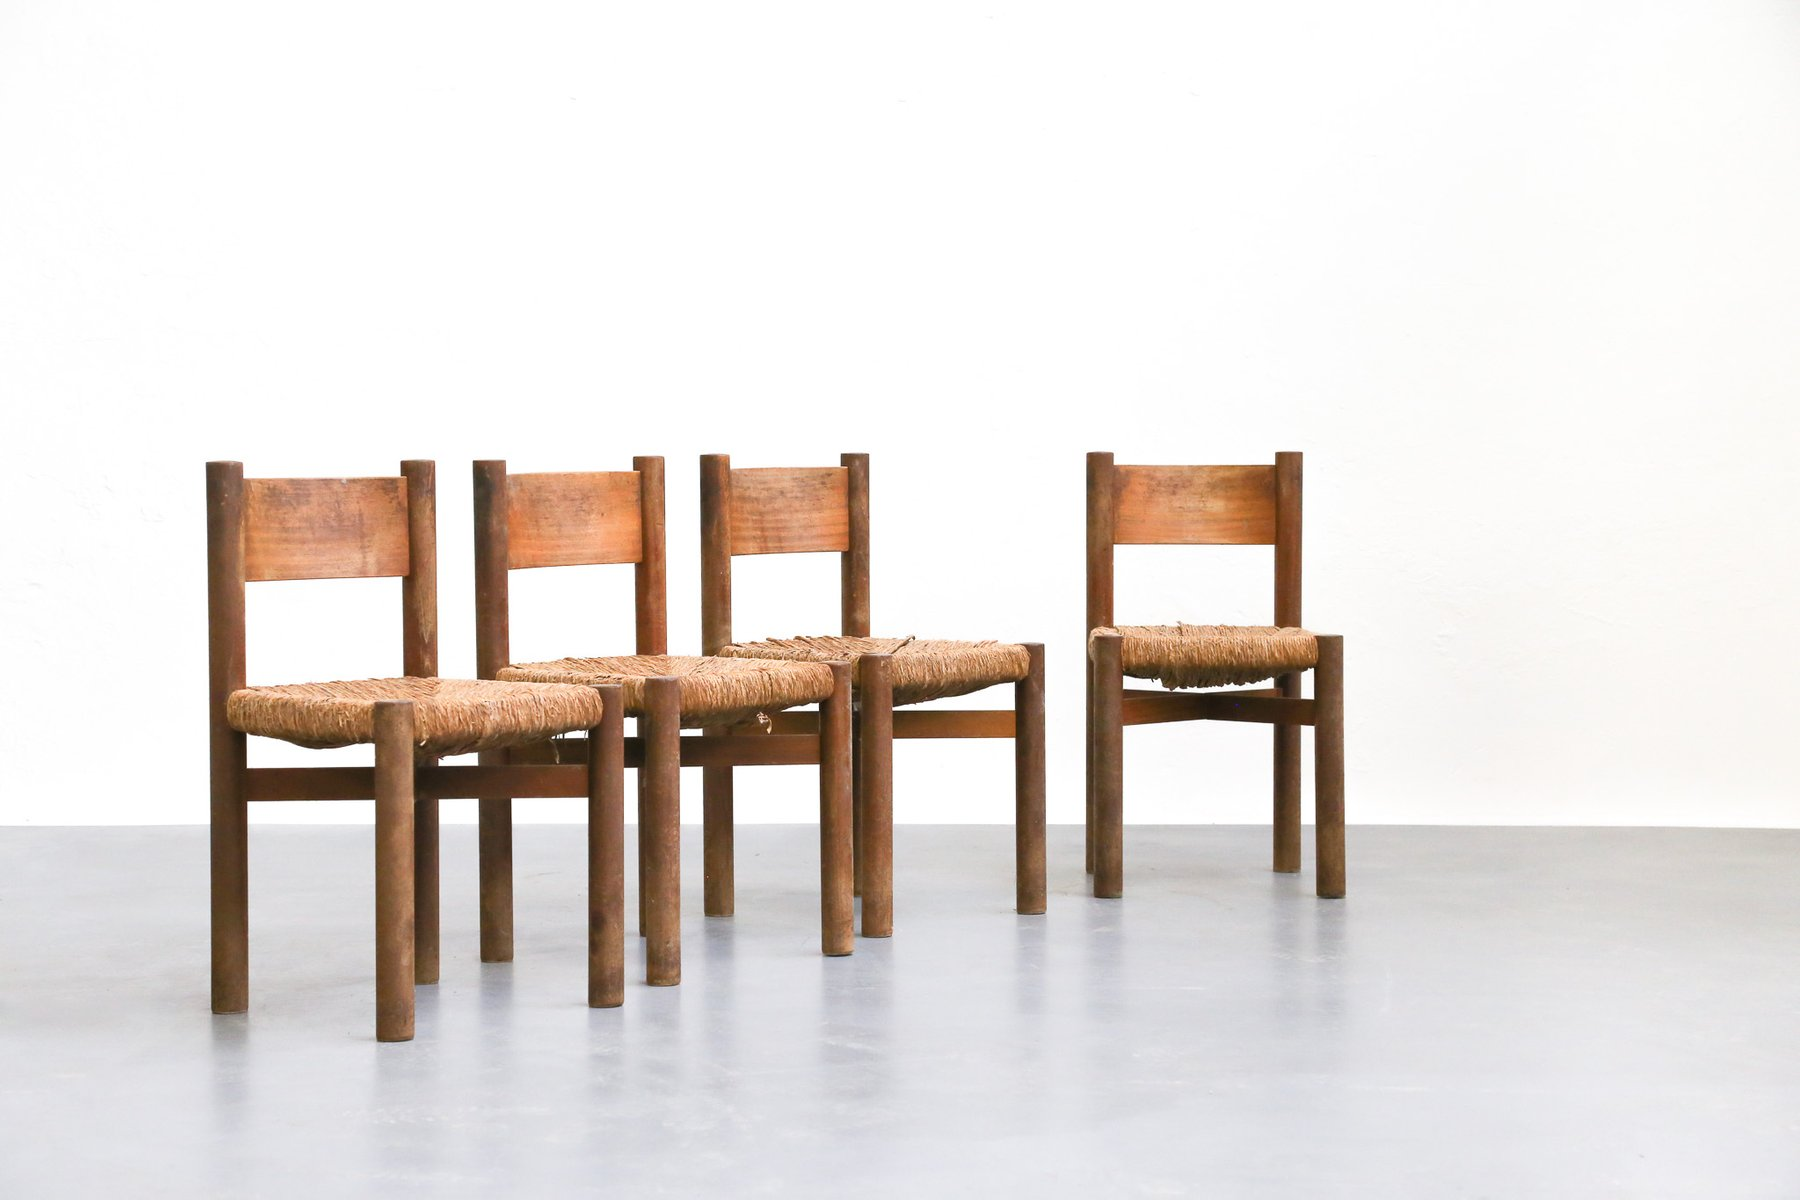 Dining Mribel Chairs by Charlotte Perriand, Set of 4 for